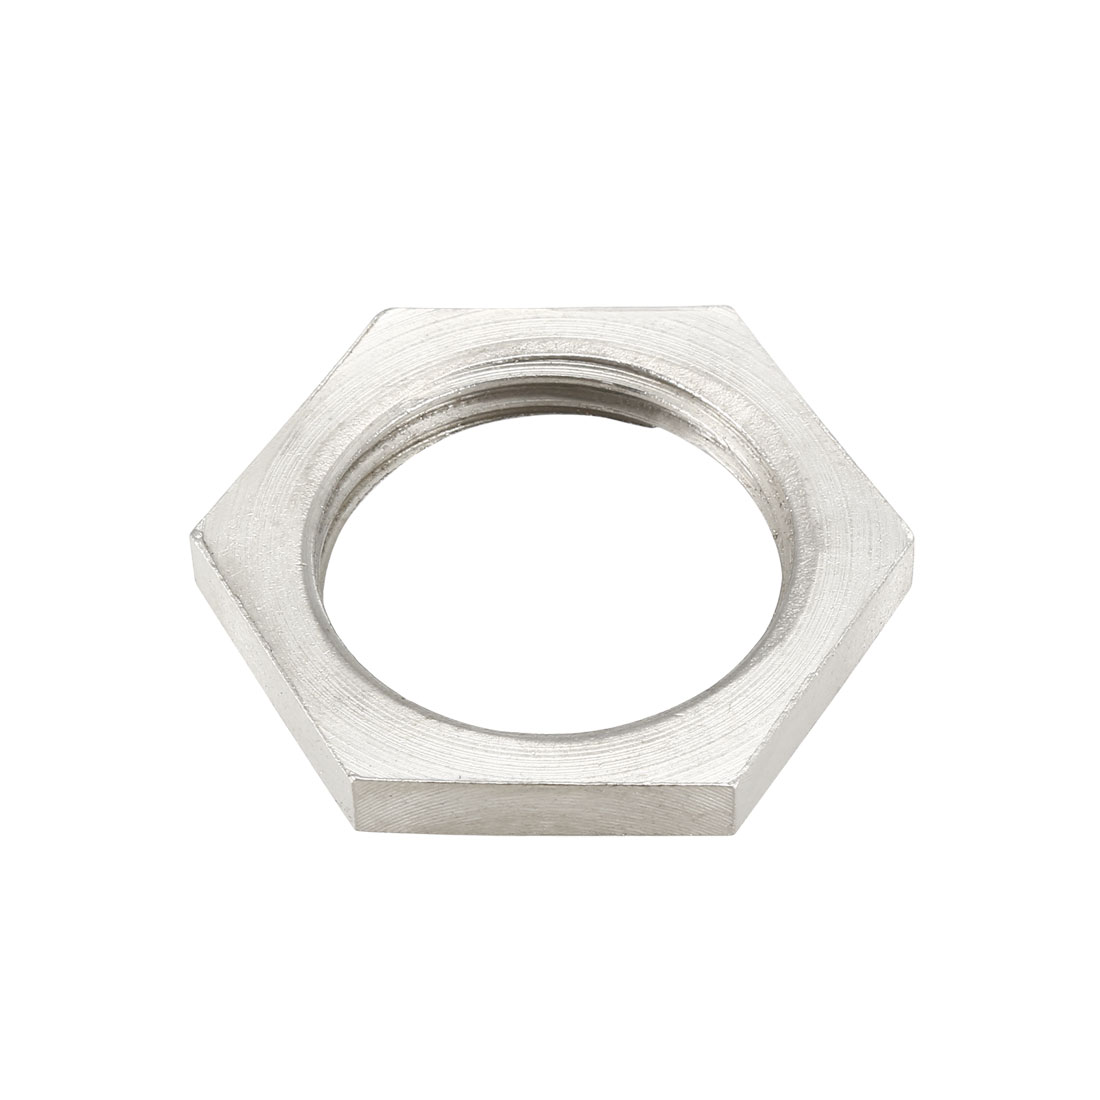 Pipe Fitting Hex Locknut SUS304 Stainless Steel G3/4 Inch Female Threaded, 2 Pcs